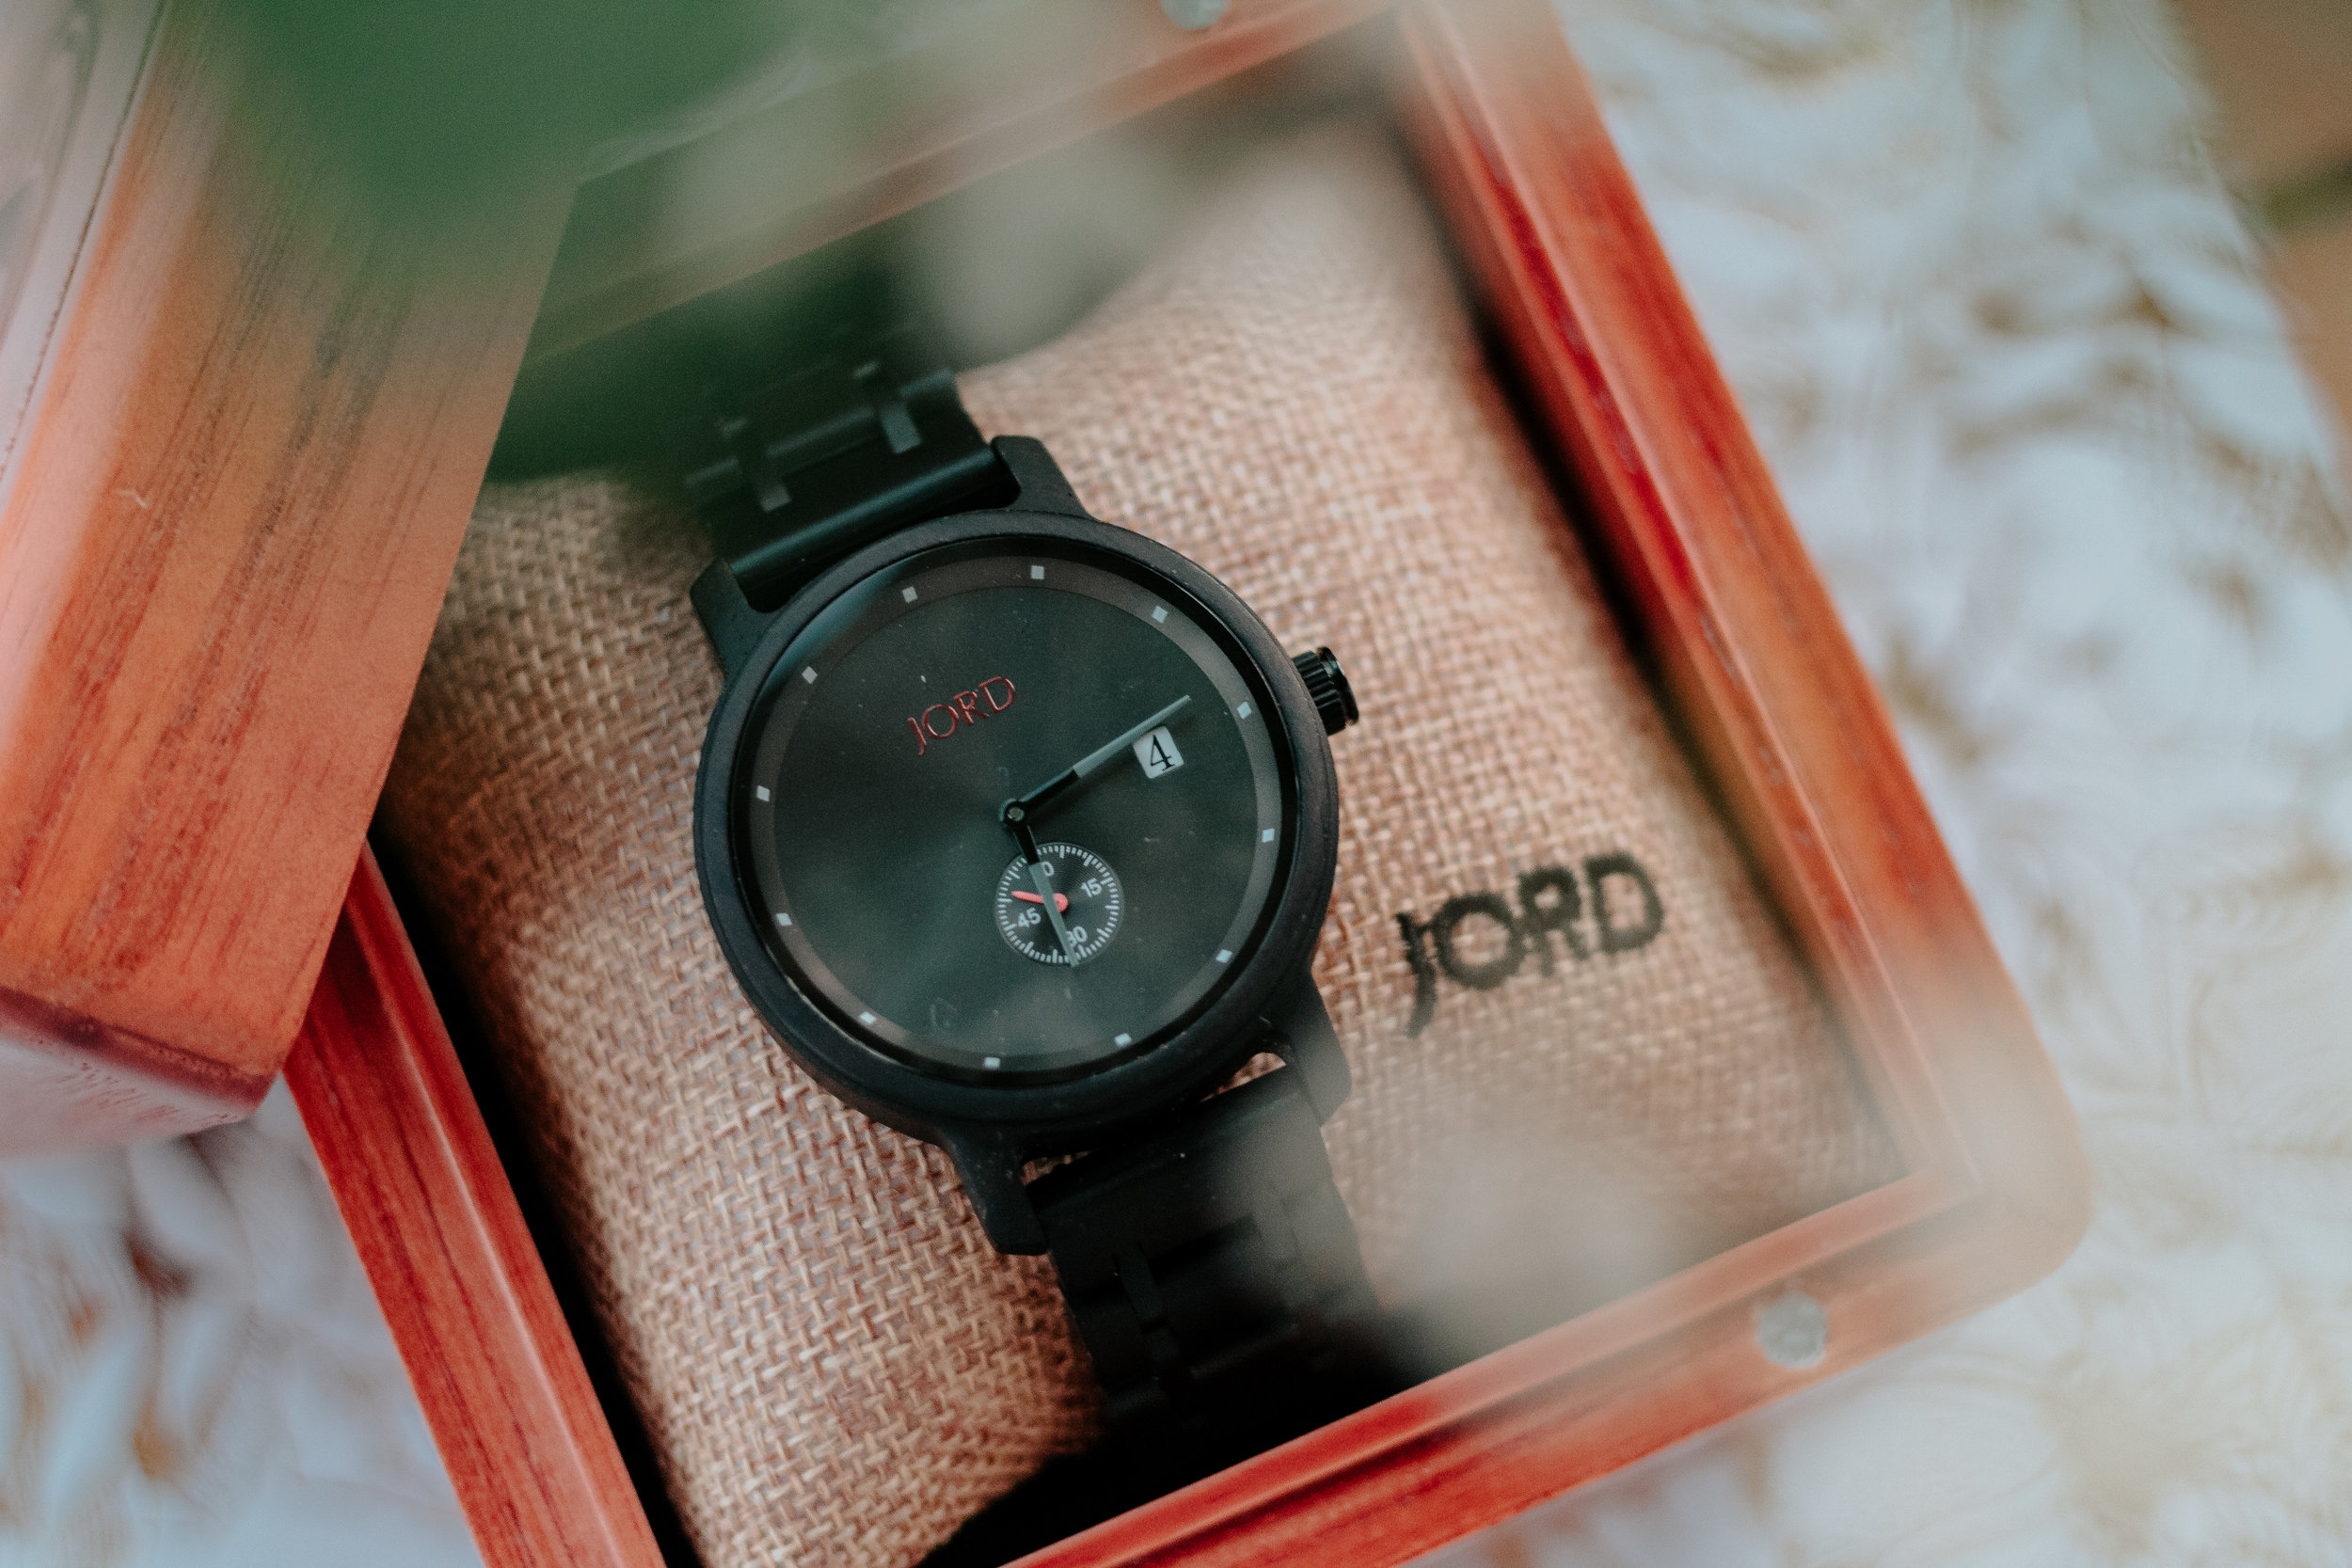 Womens Watch | The Simplistic Chic